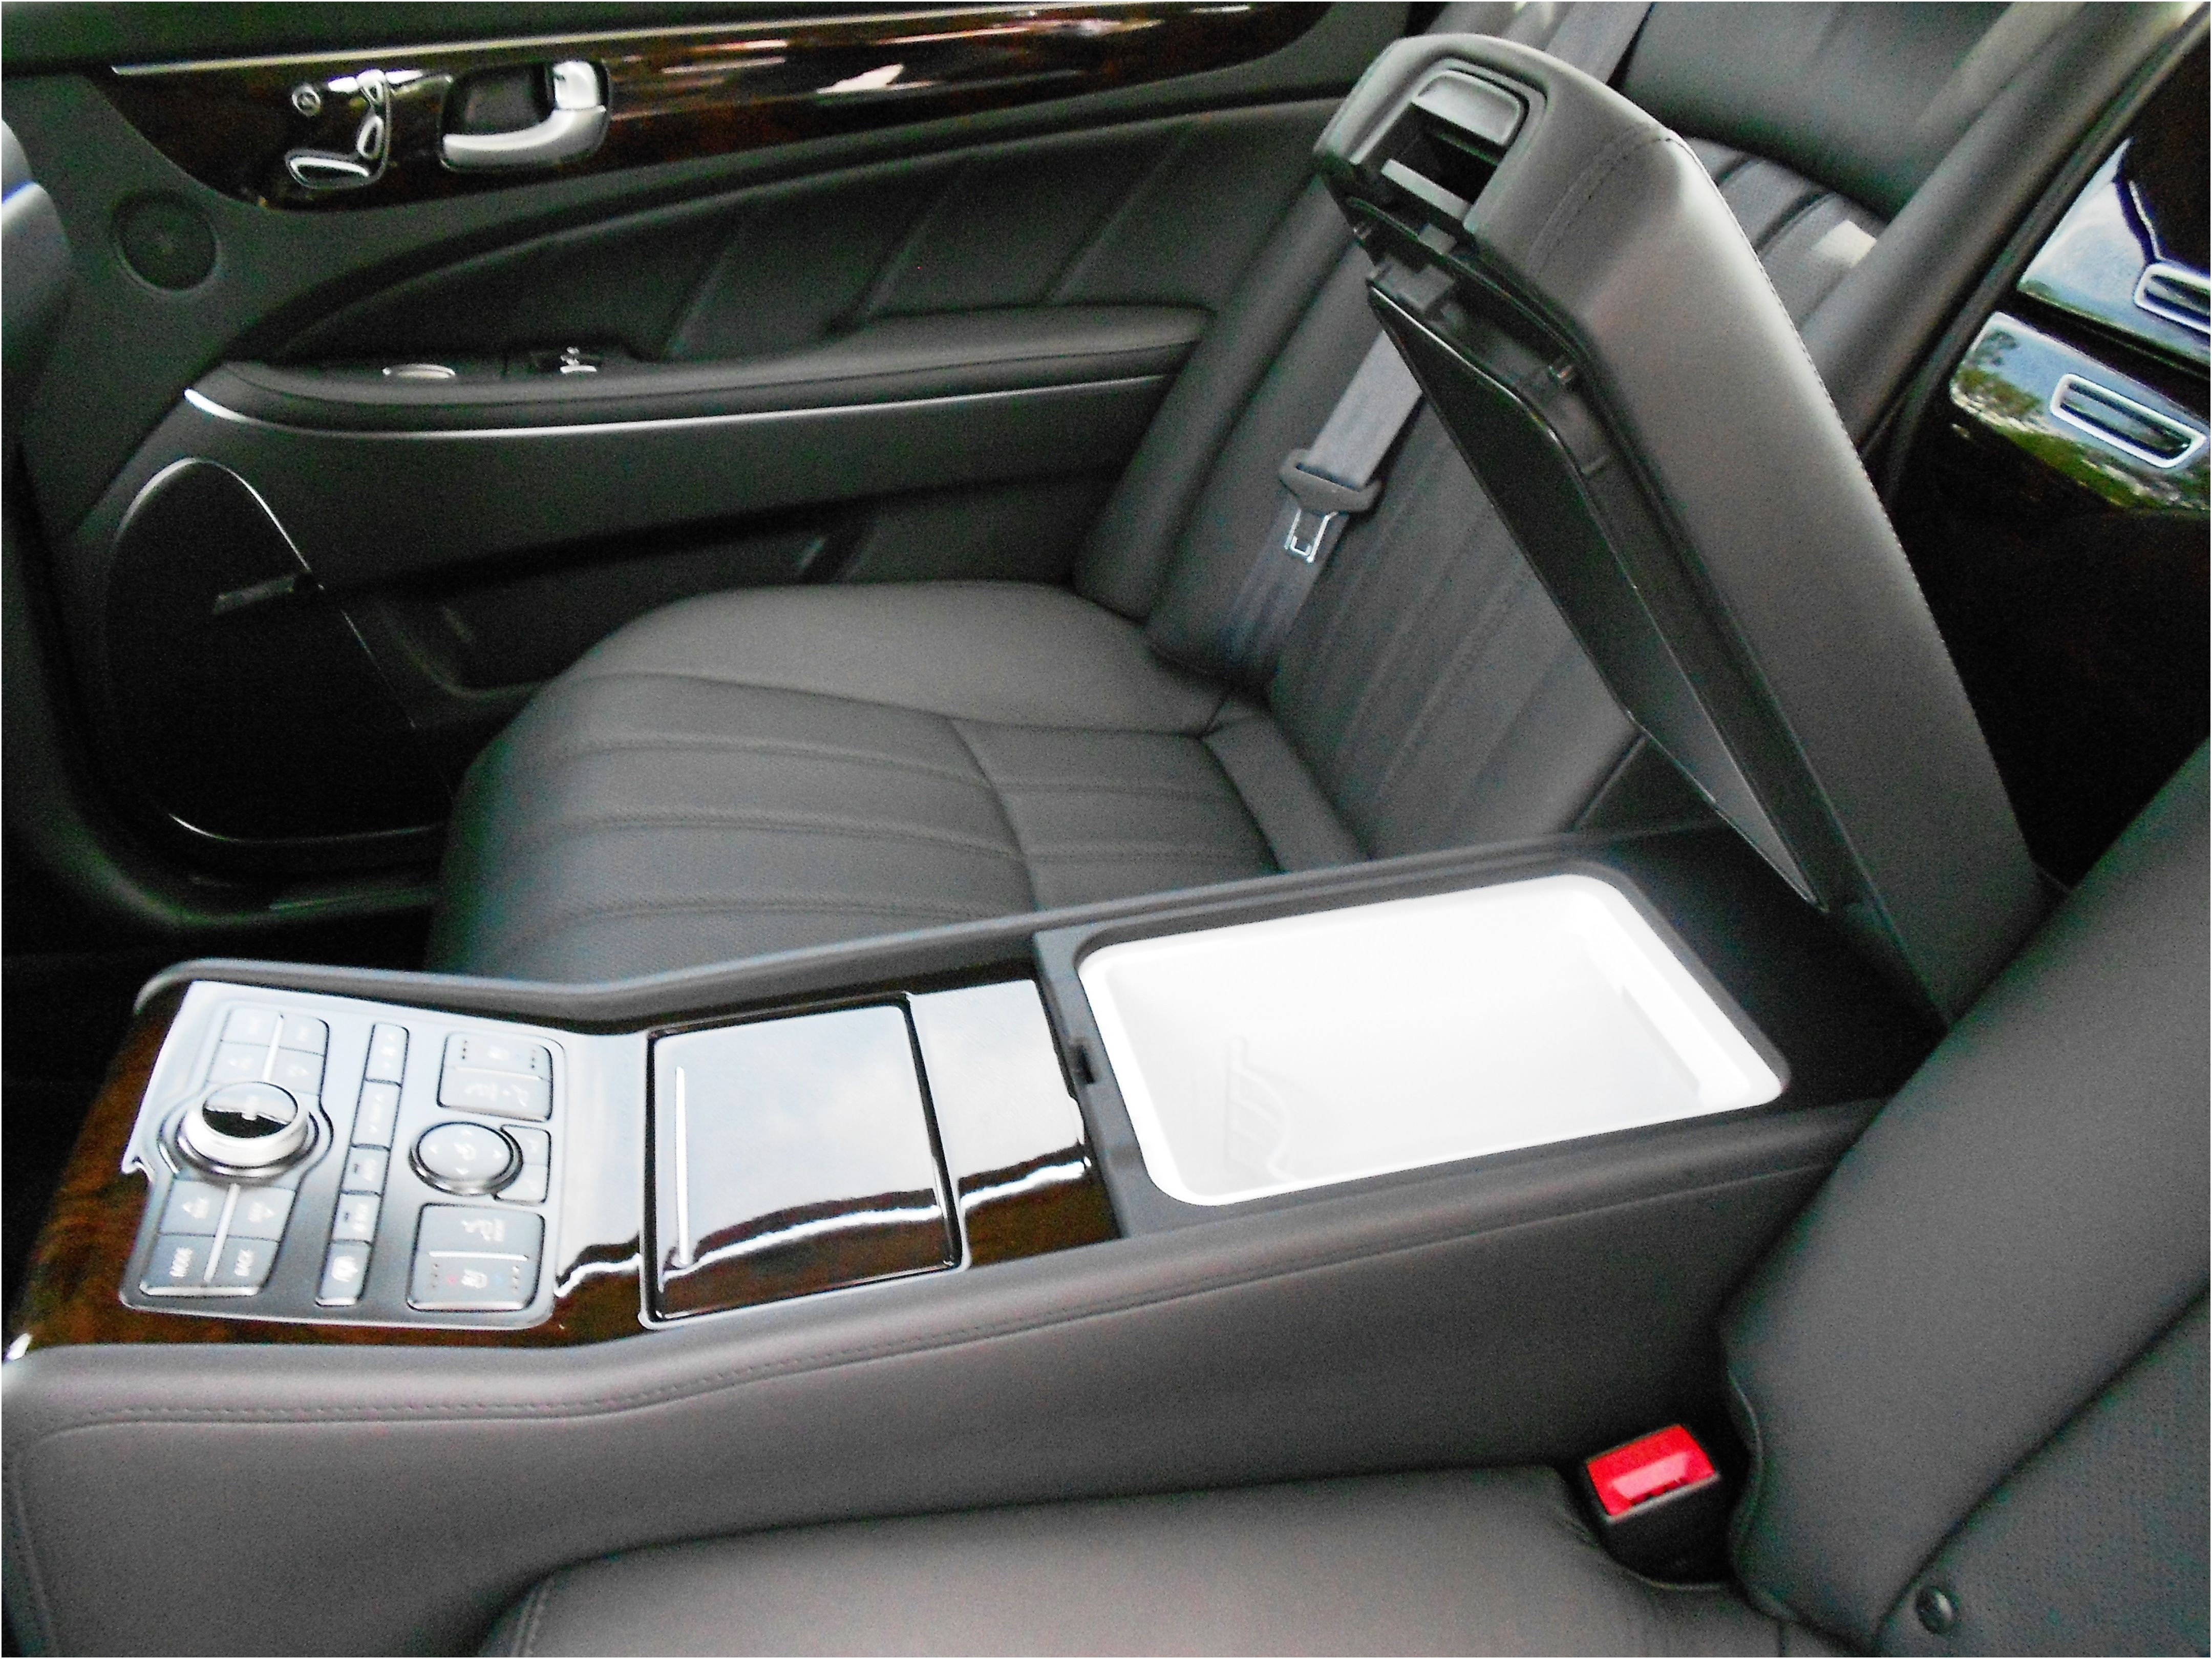 Elegant Devon Acura 2012 Hyundai Equus Rear center console with refrigerator